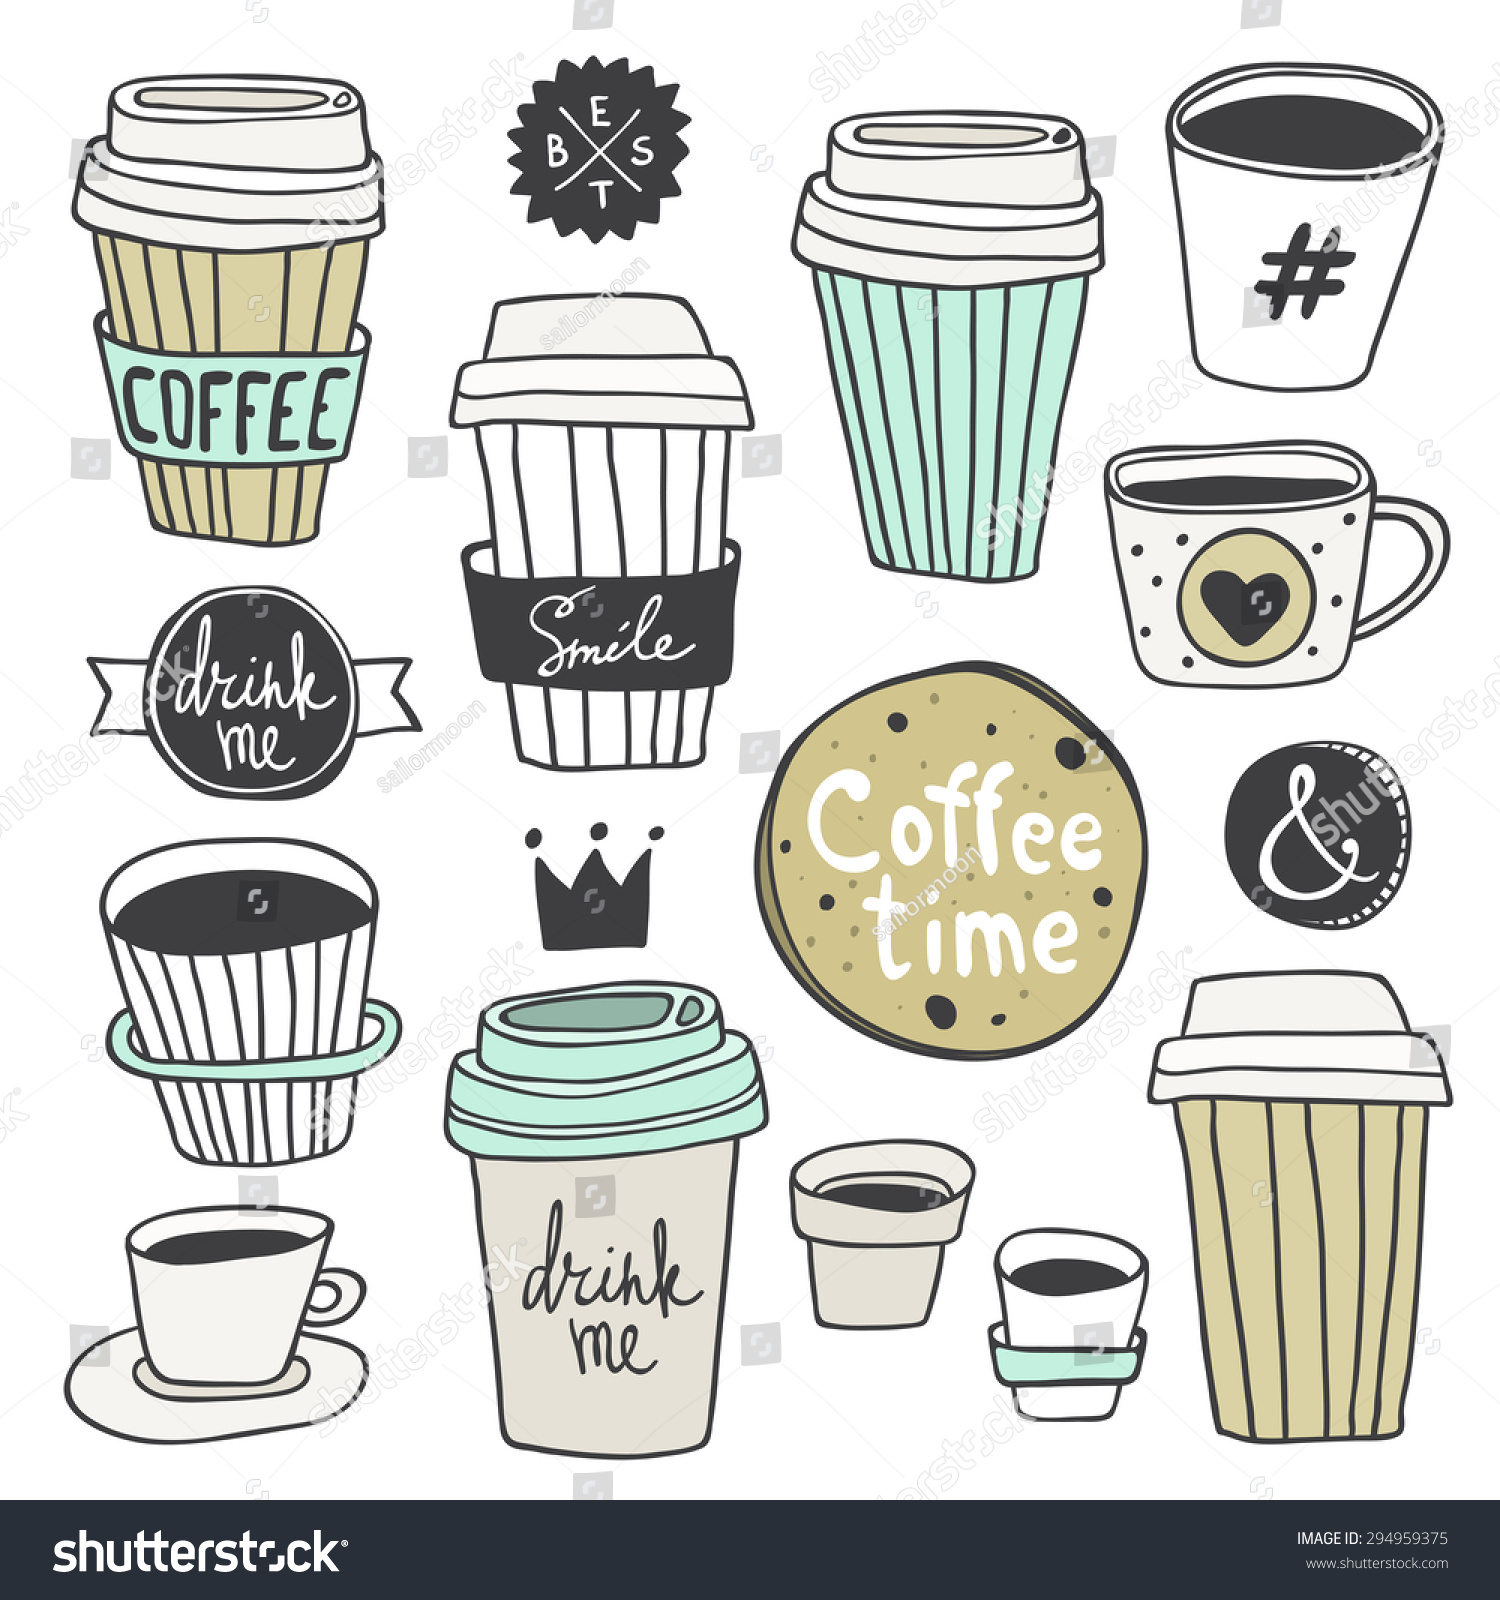 clipart coffee time - photo #30